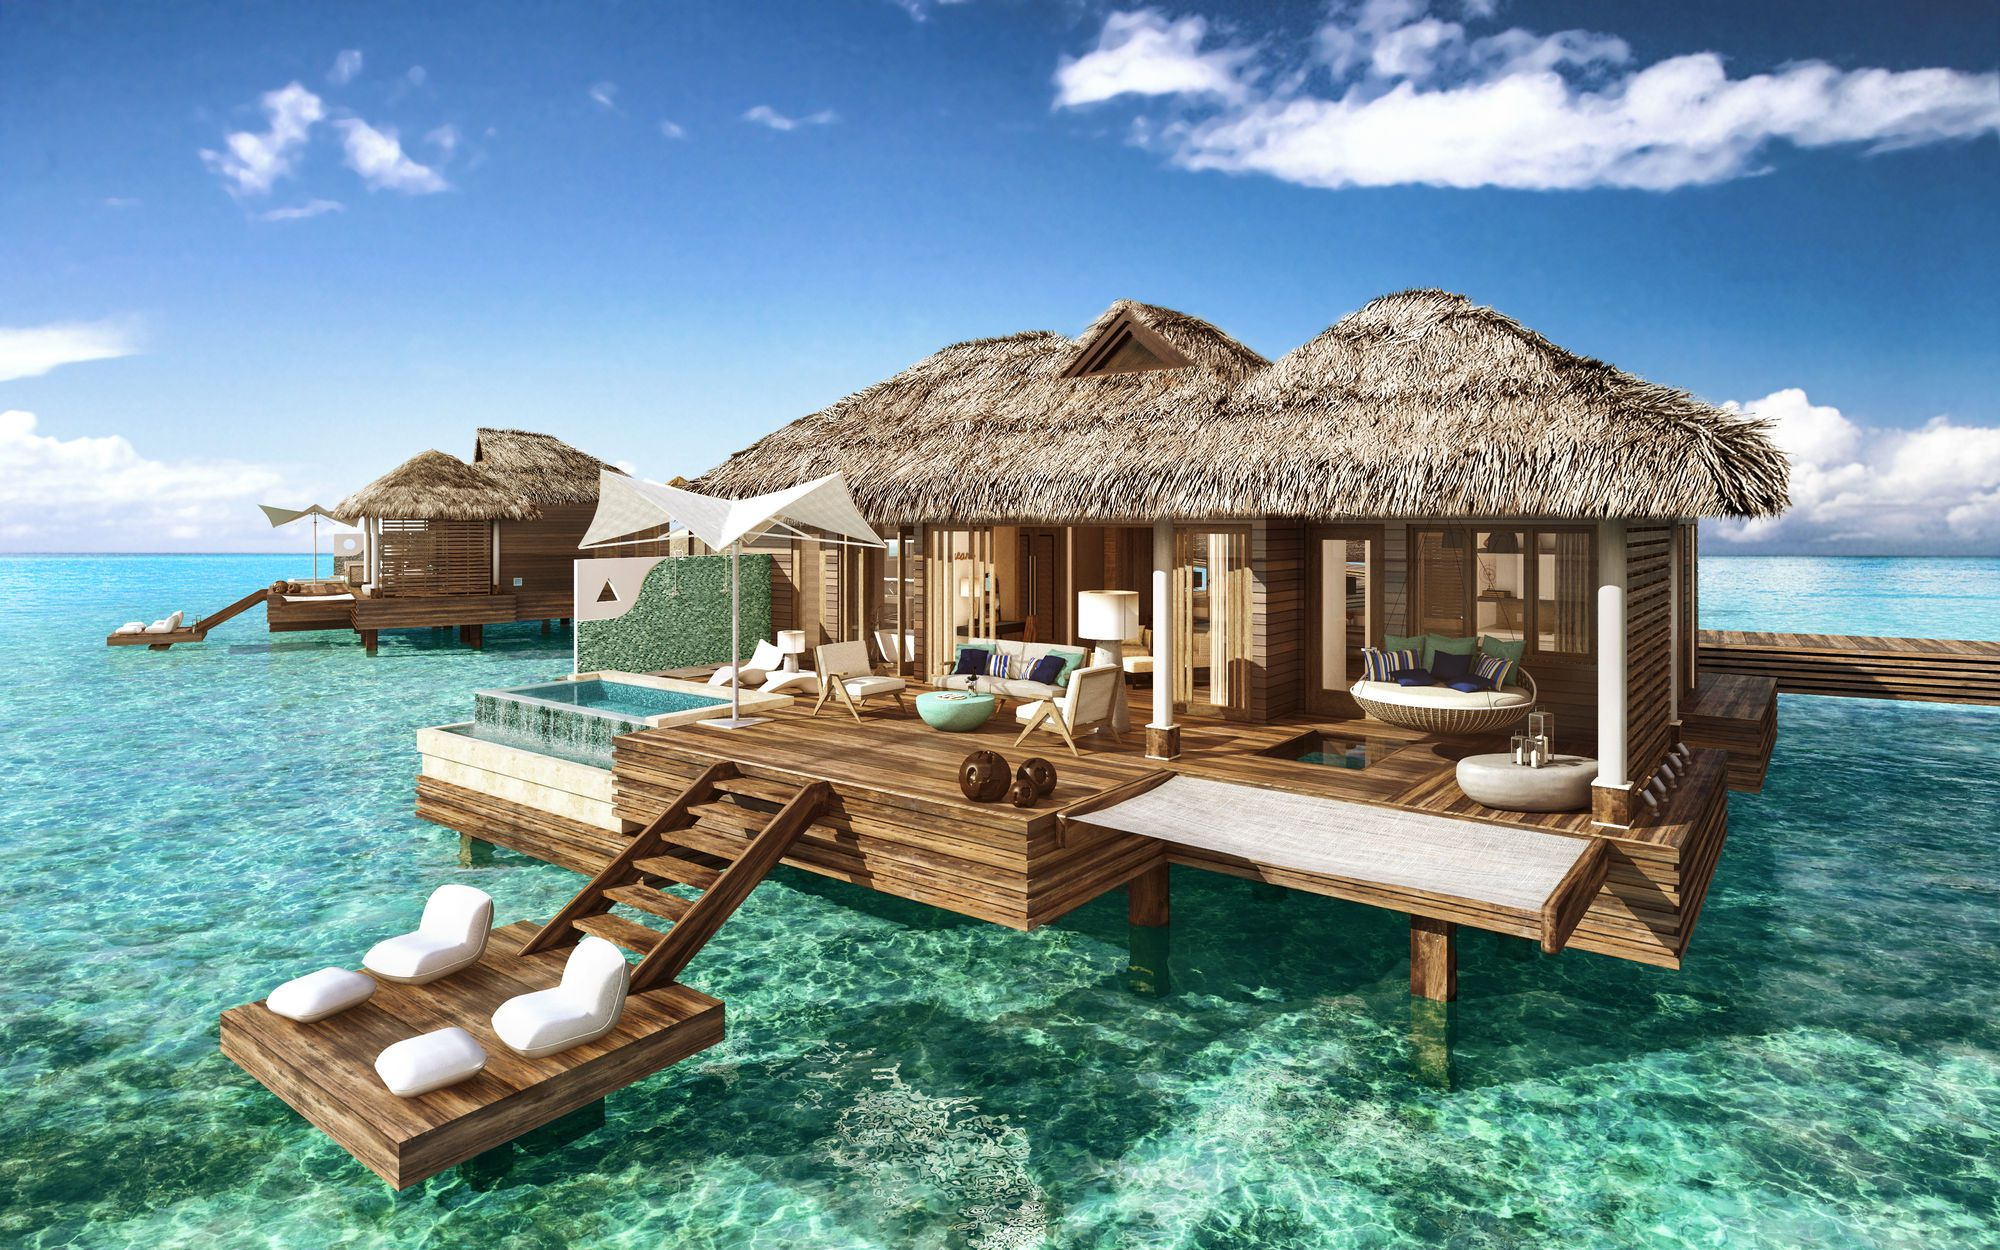 Overwater Bungalows in St. Lucia   Islands